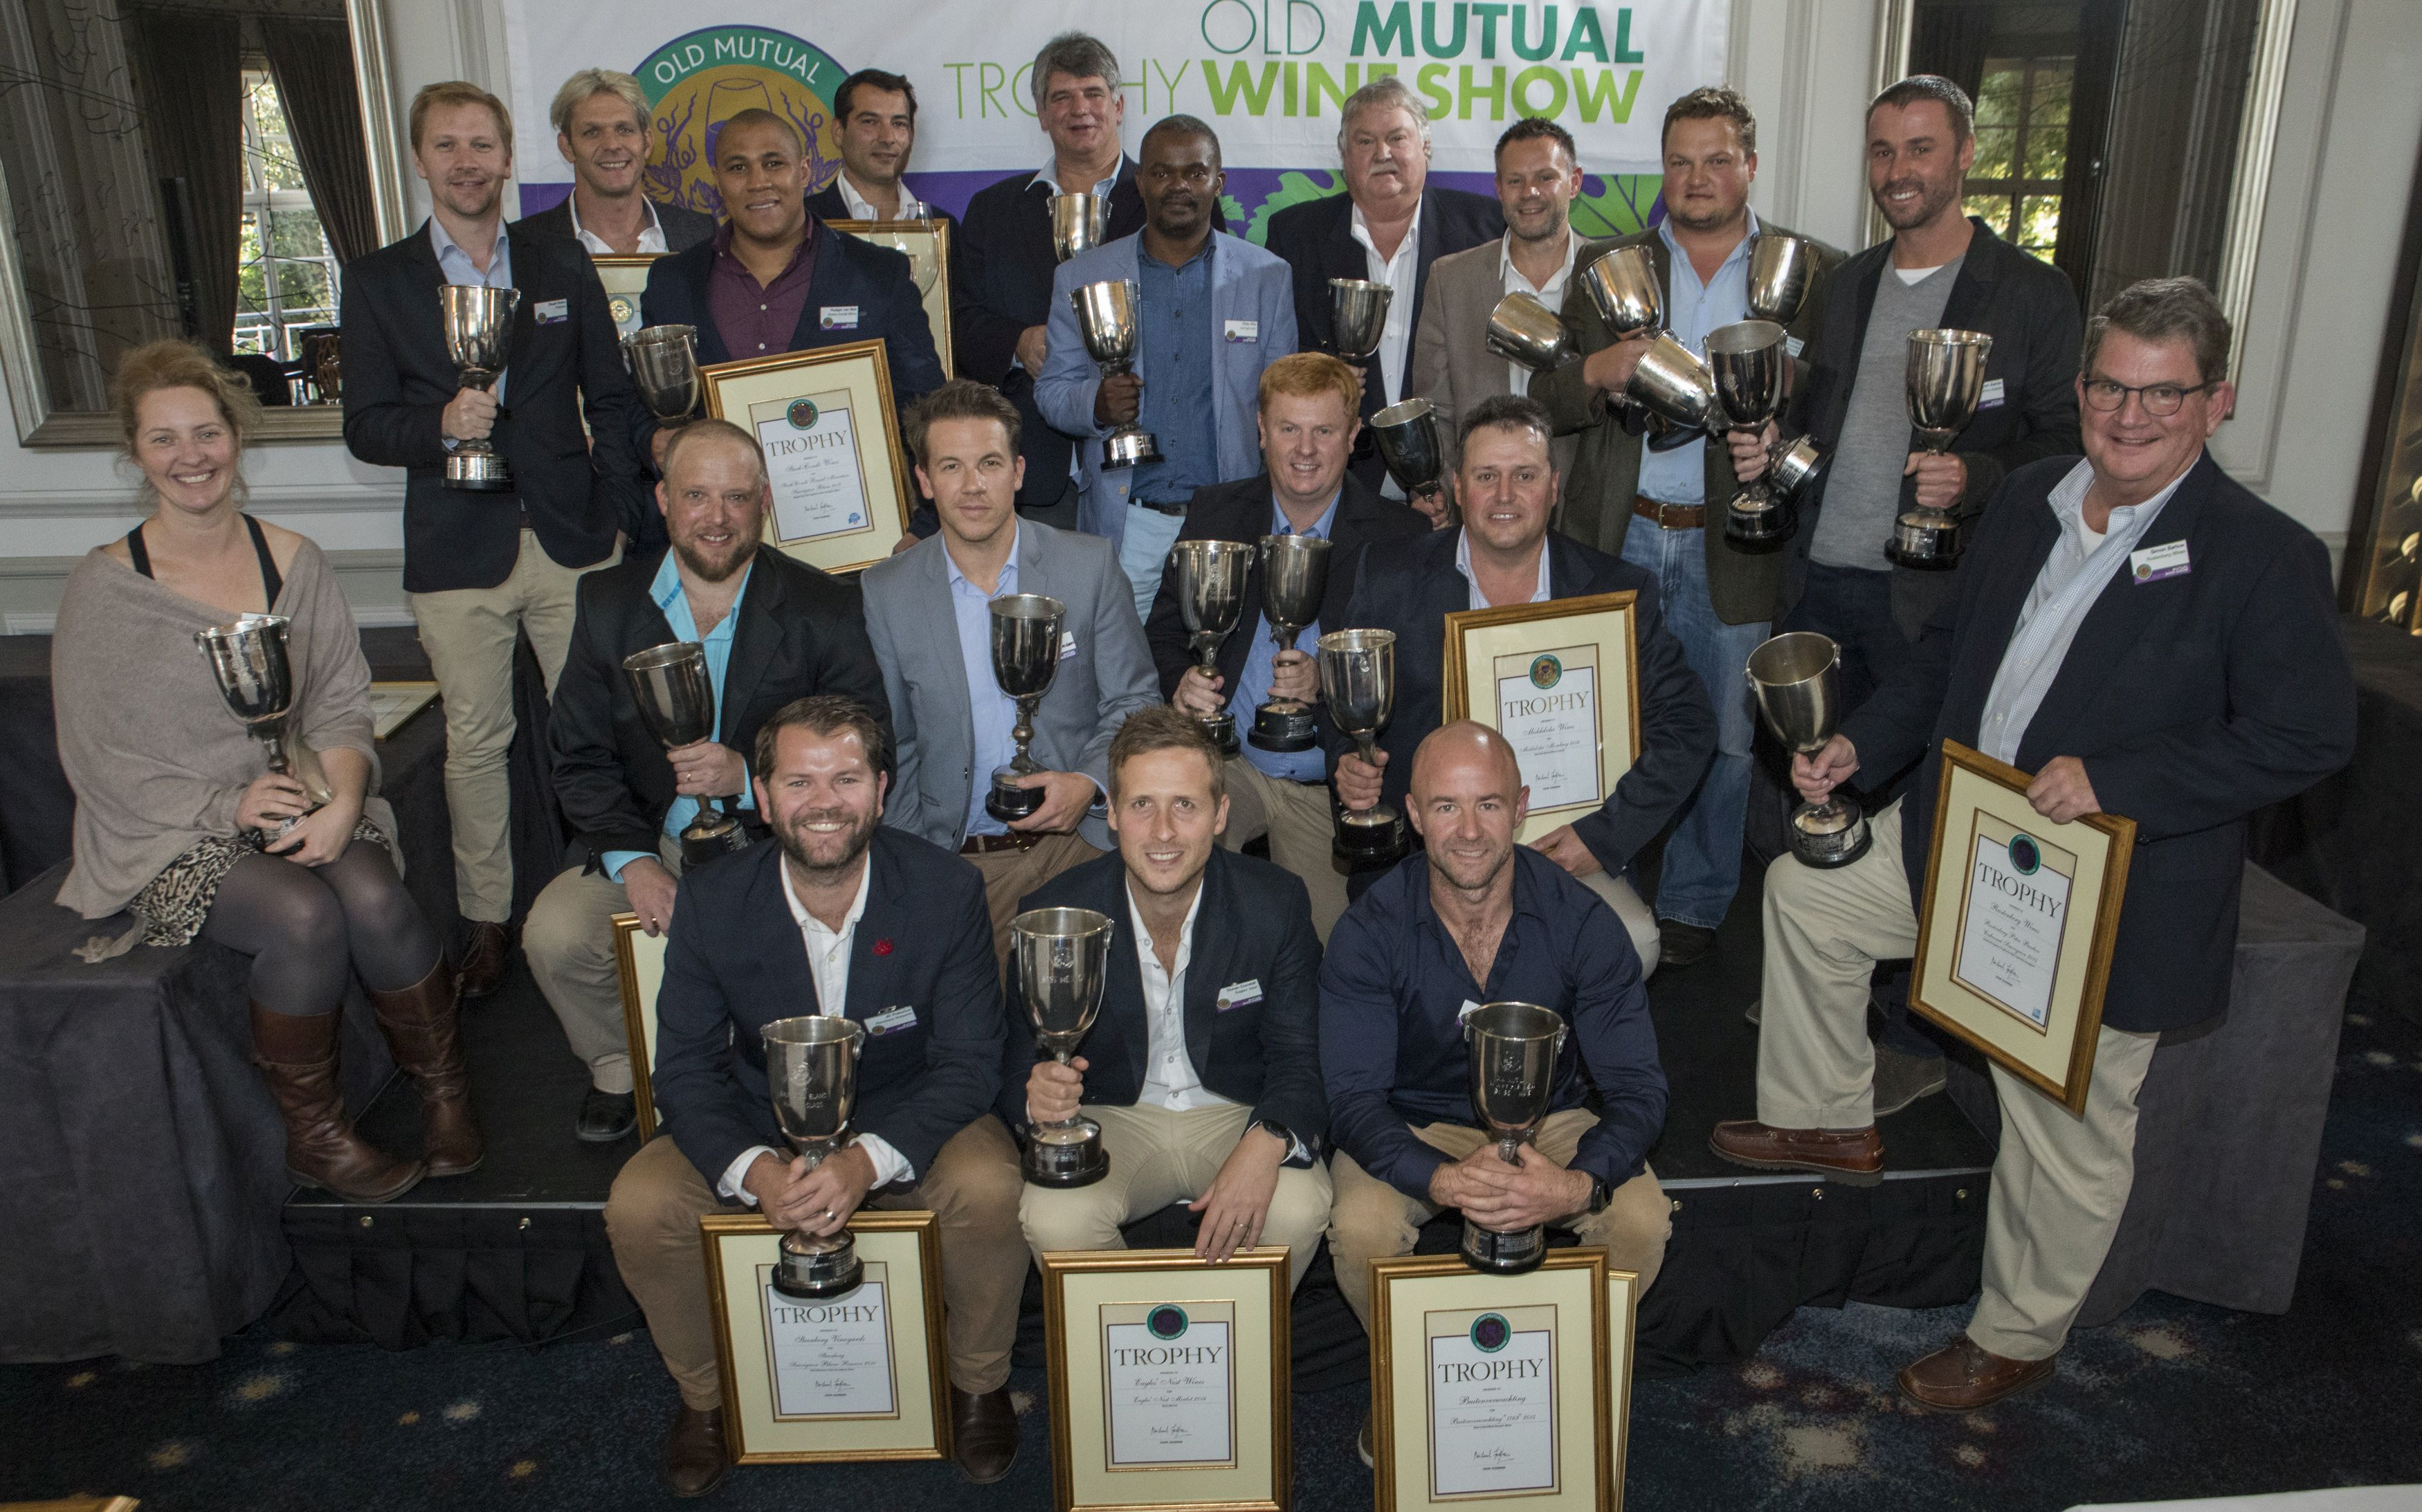 Old Mutual Trophy Wine Show Results 2018 photo